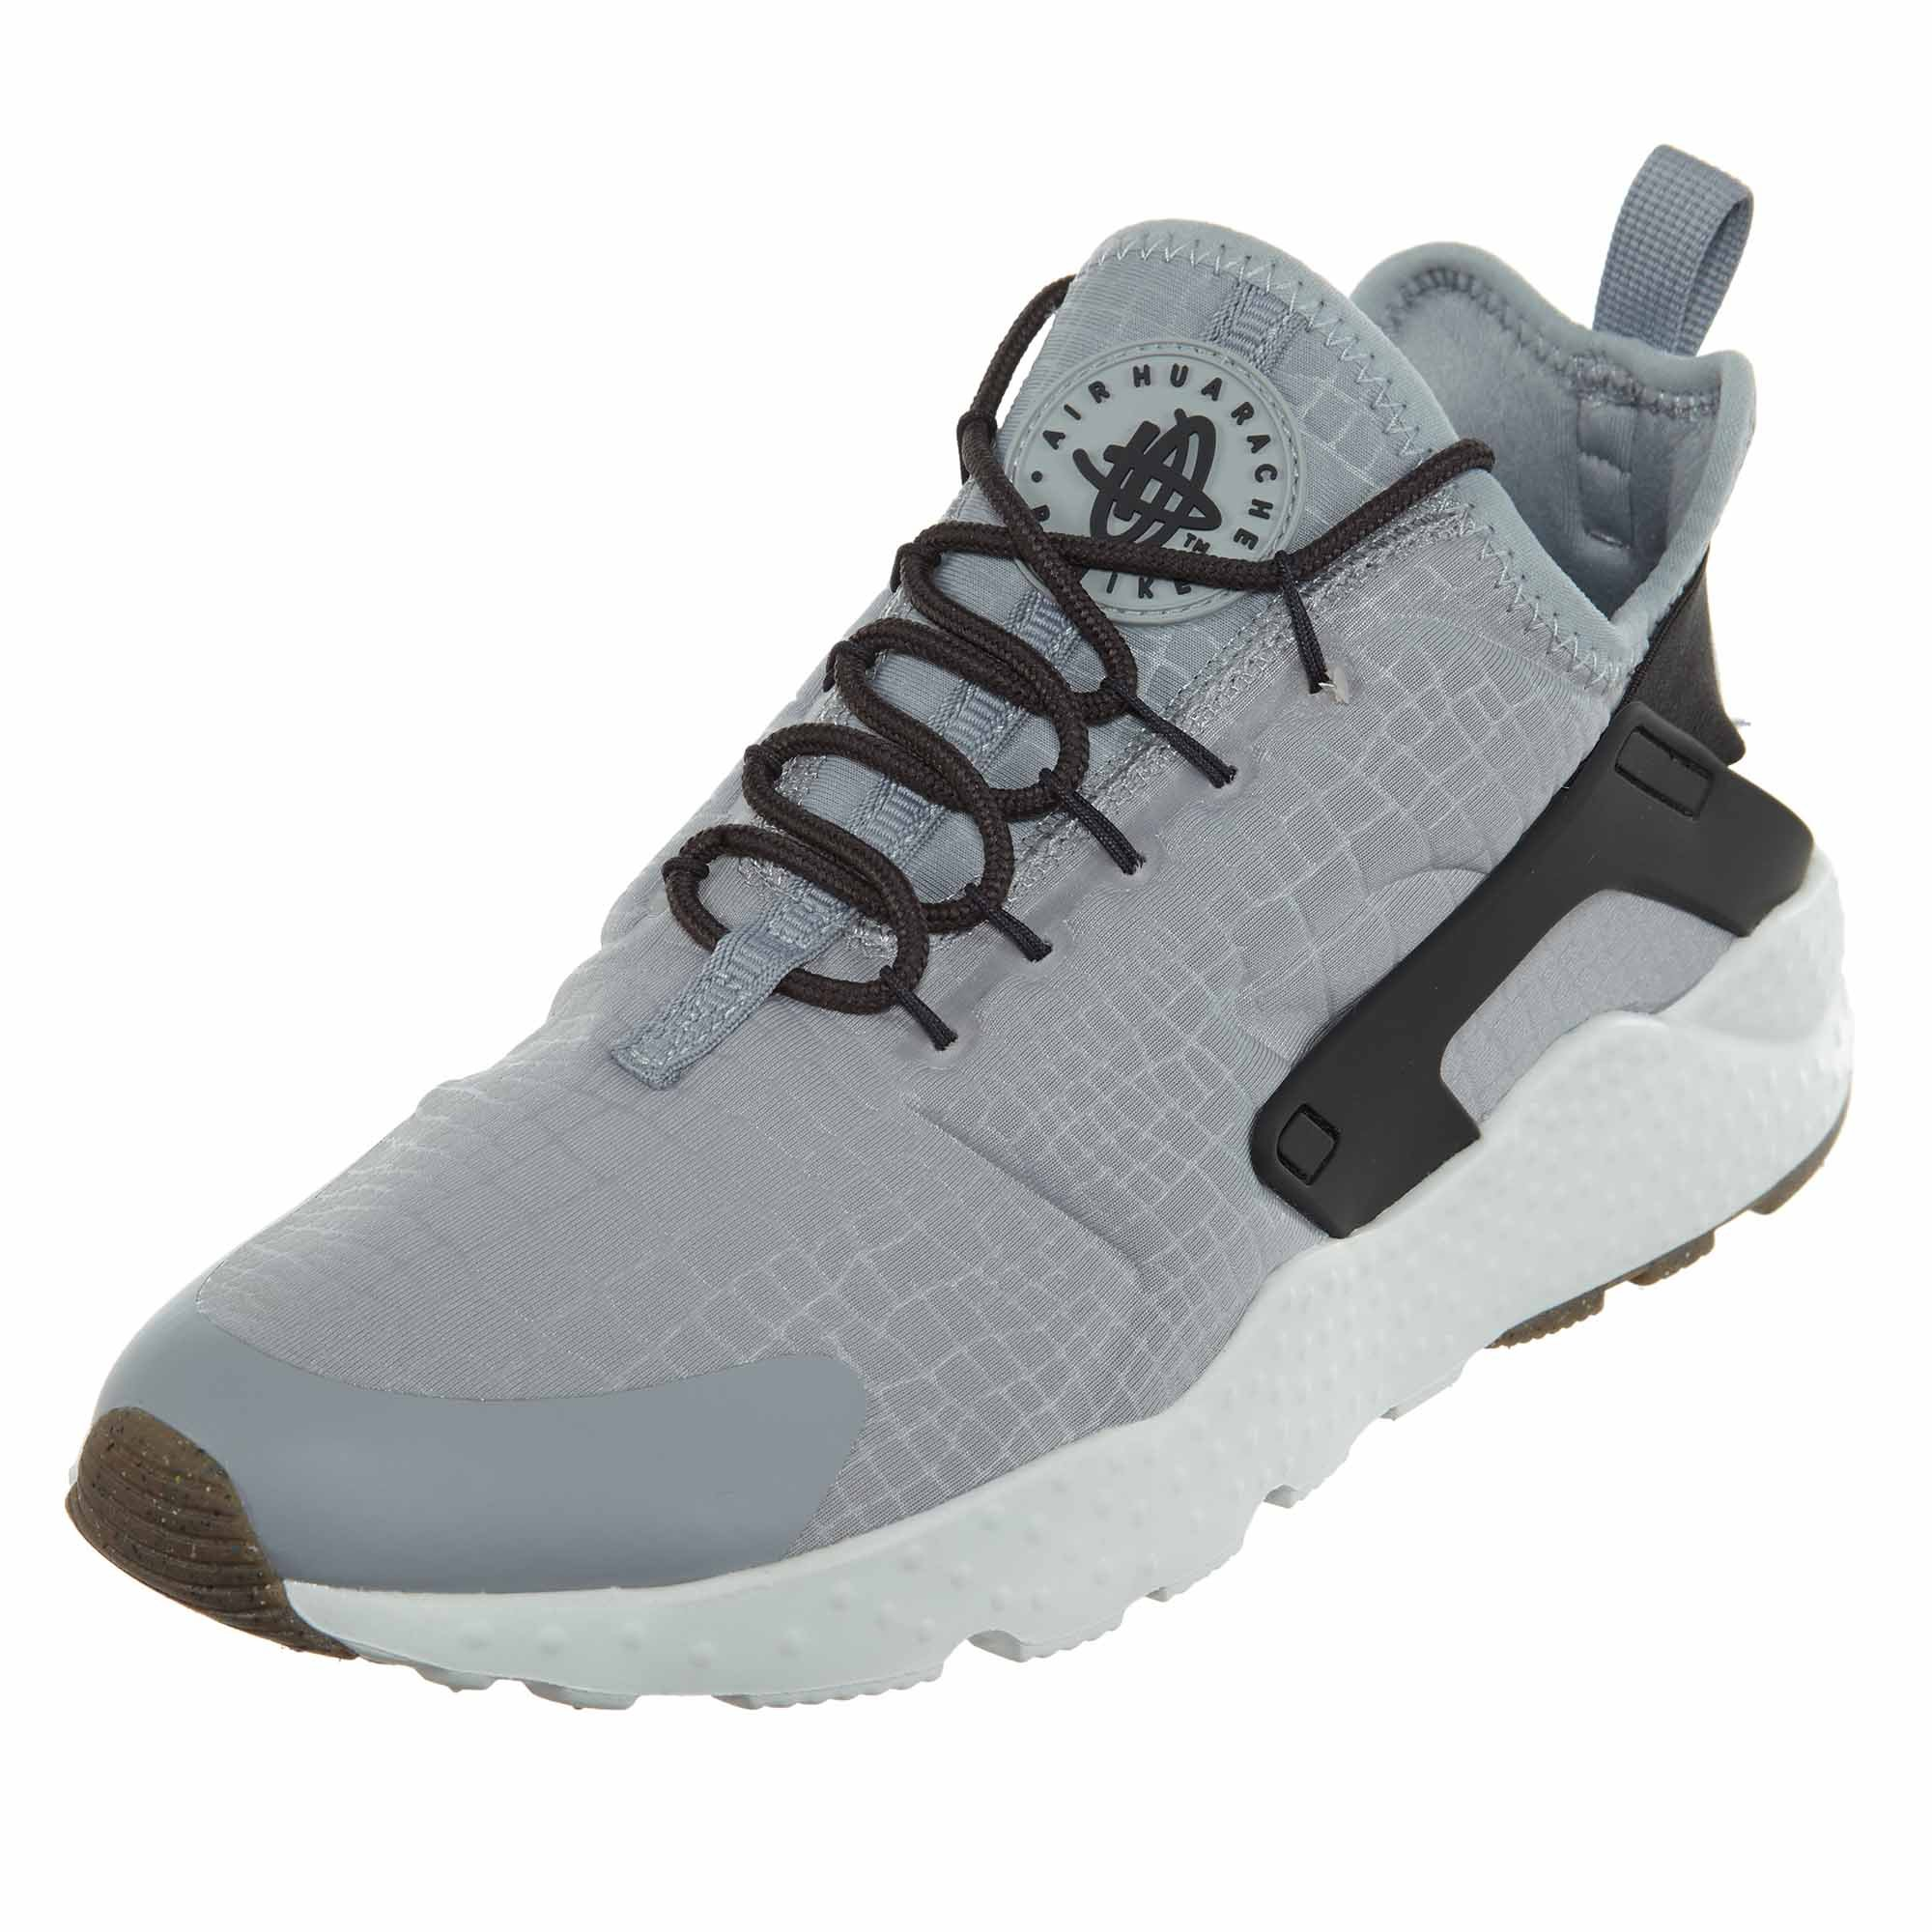 Nike Air Huarache Run Ultra Womens Style : 819151 Style : 819151-013 Size : 9.5 B(M) US by NIKE